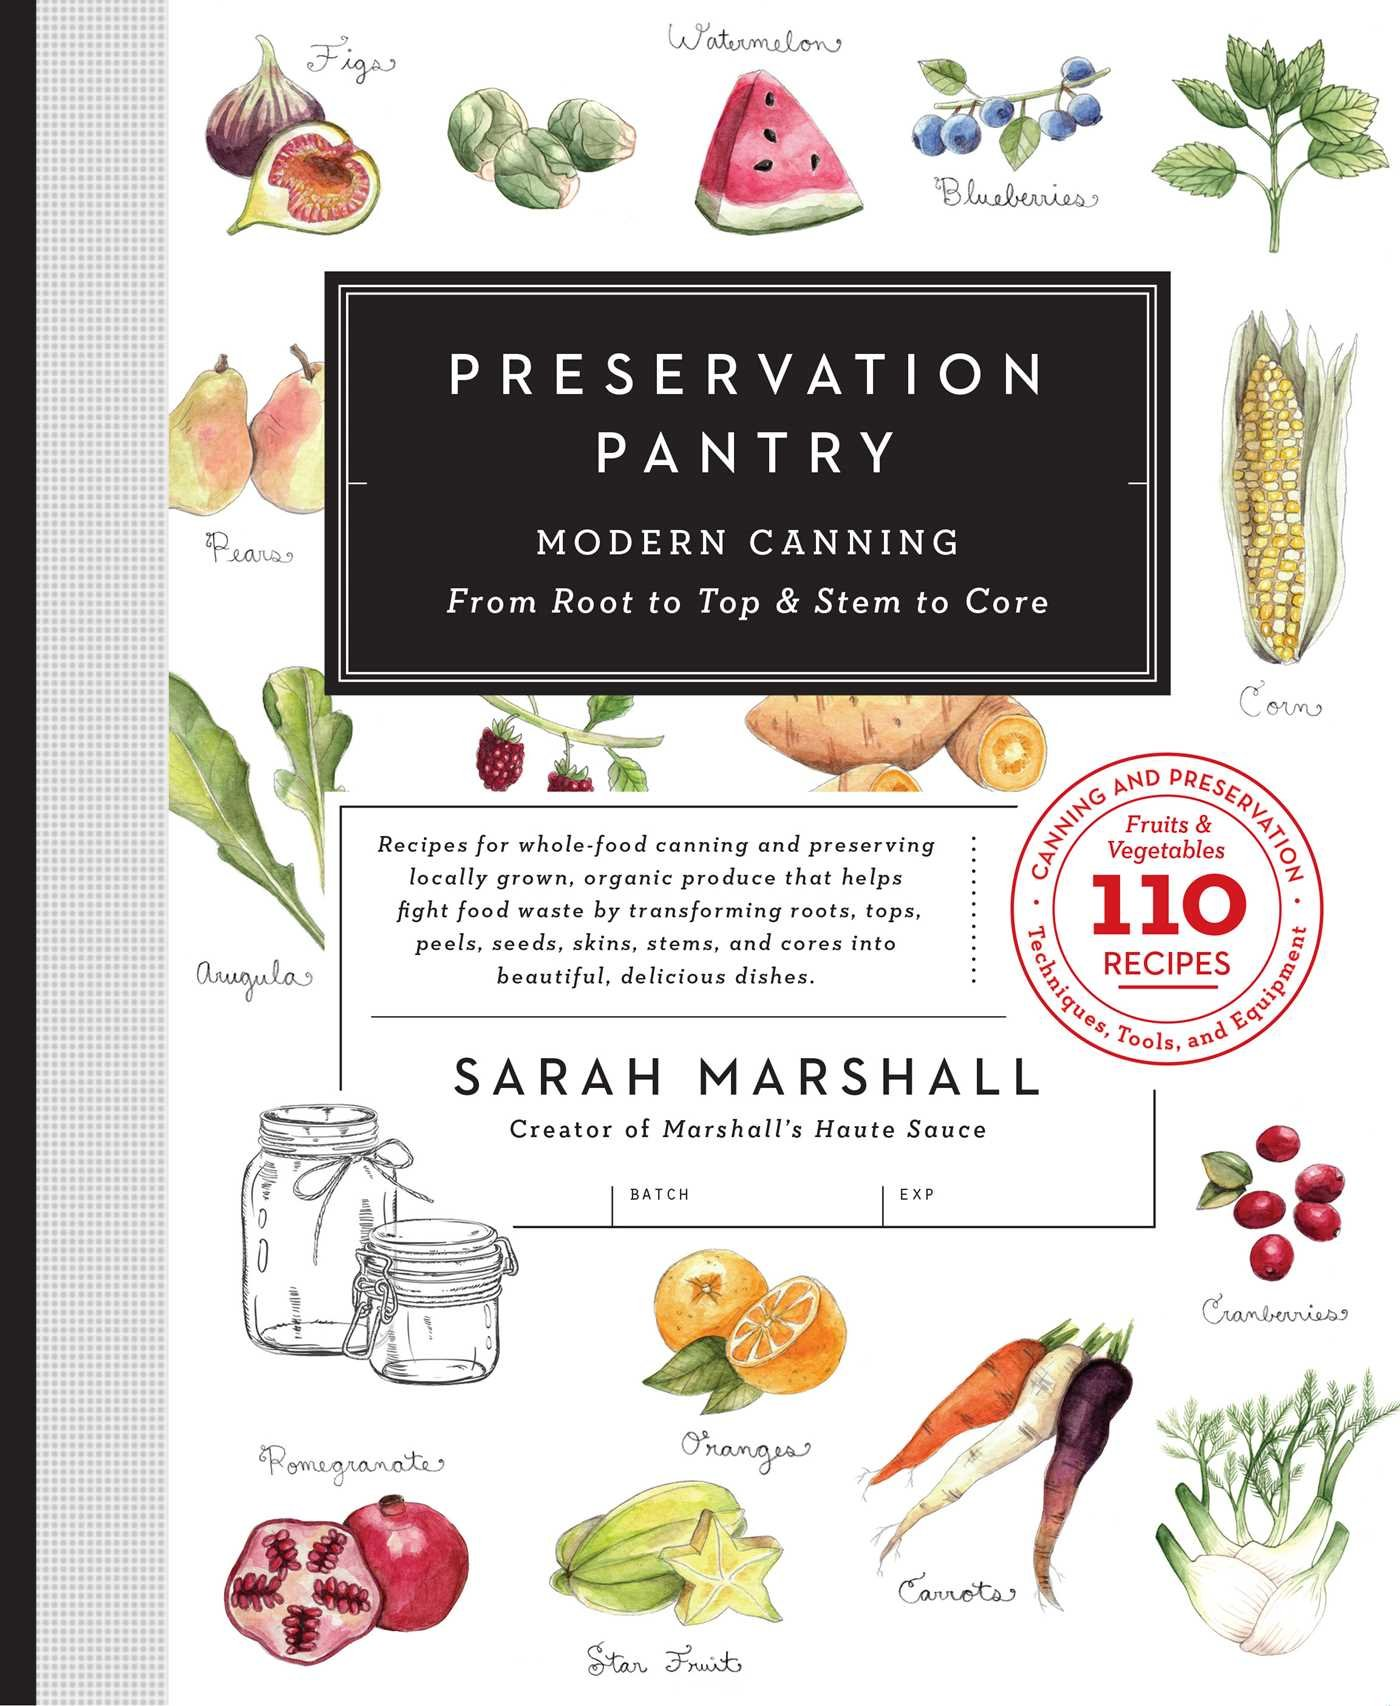 Preservation Pantry: Modern Canning From Root to Top & Stem to Core PDF